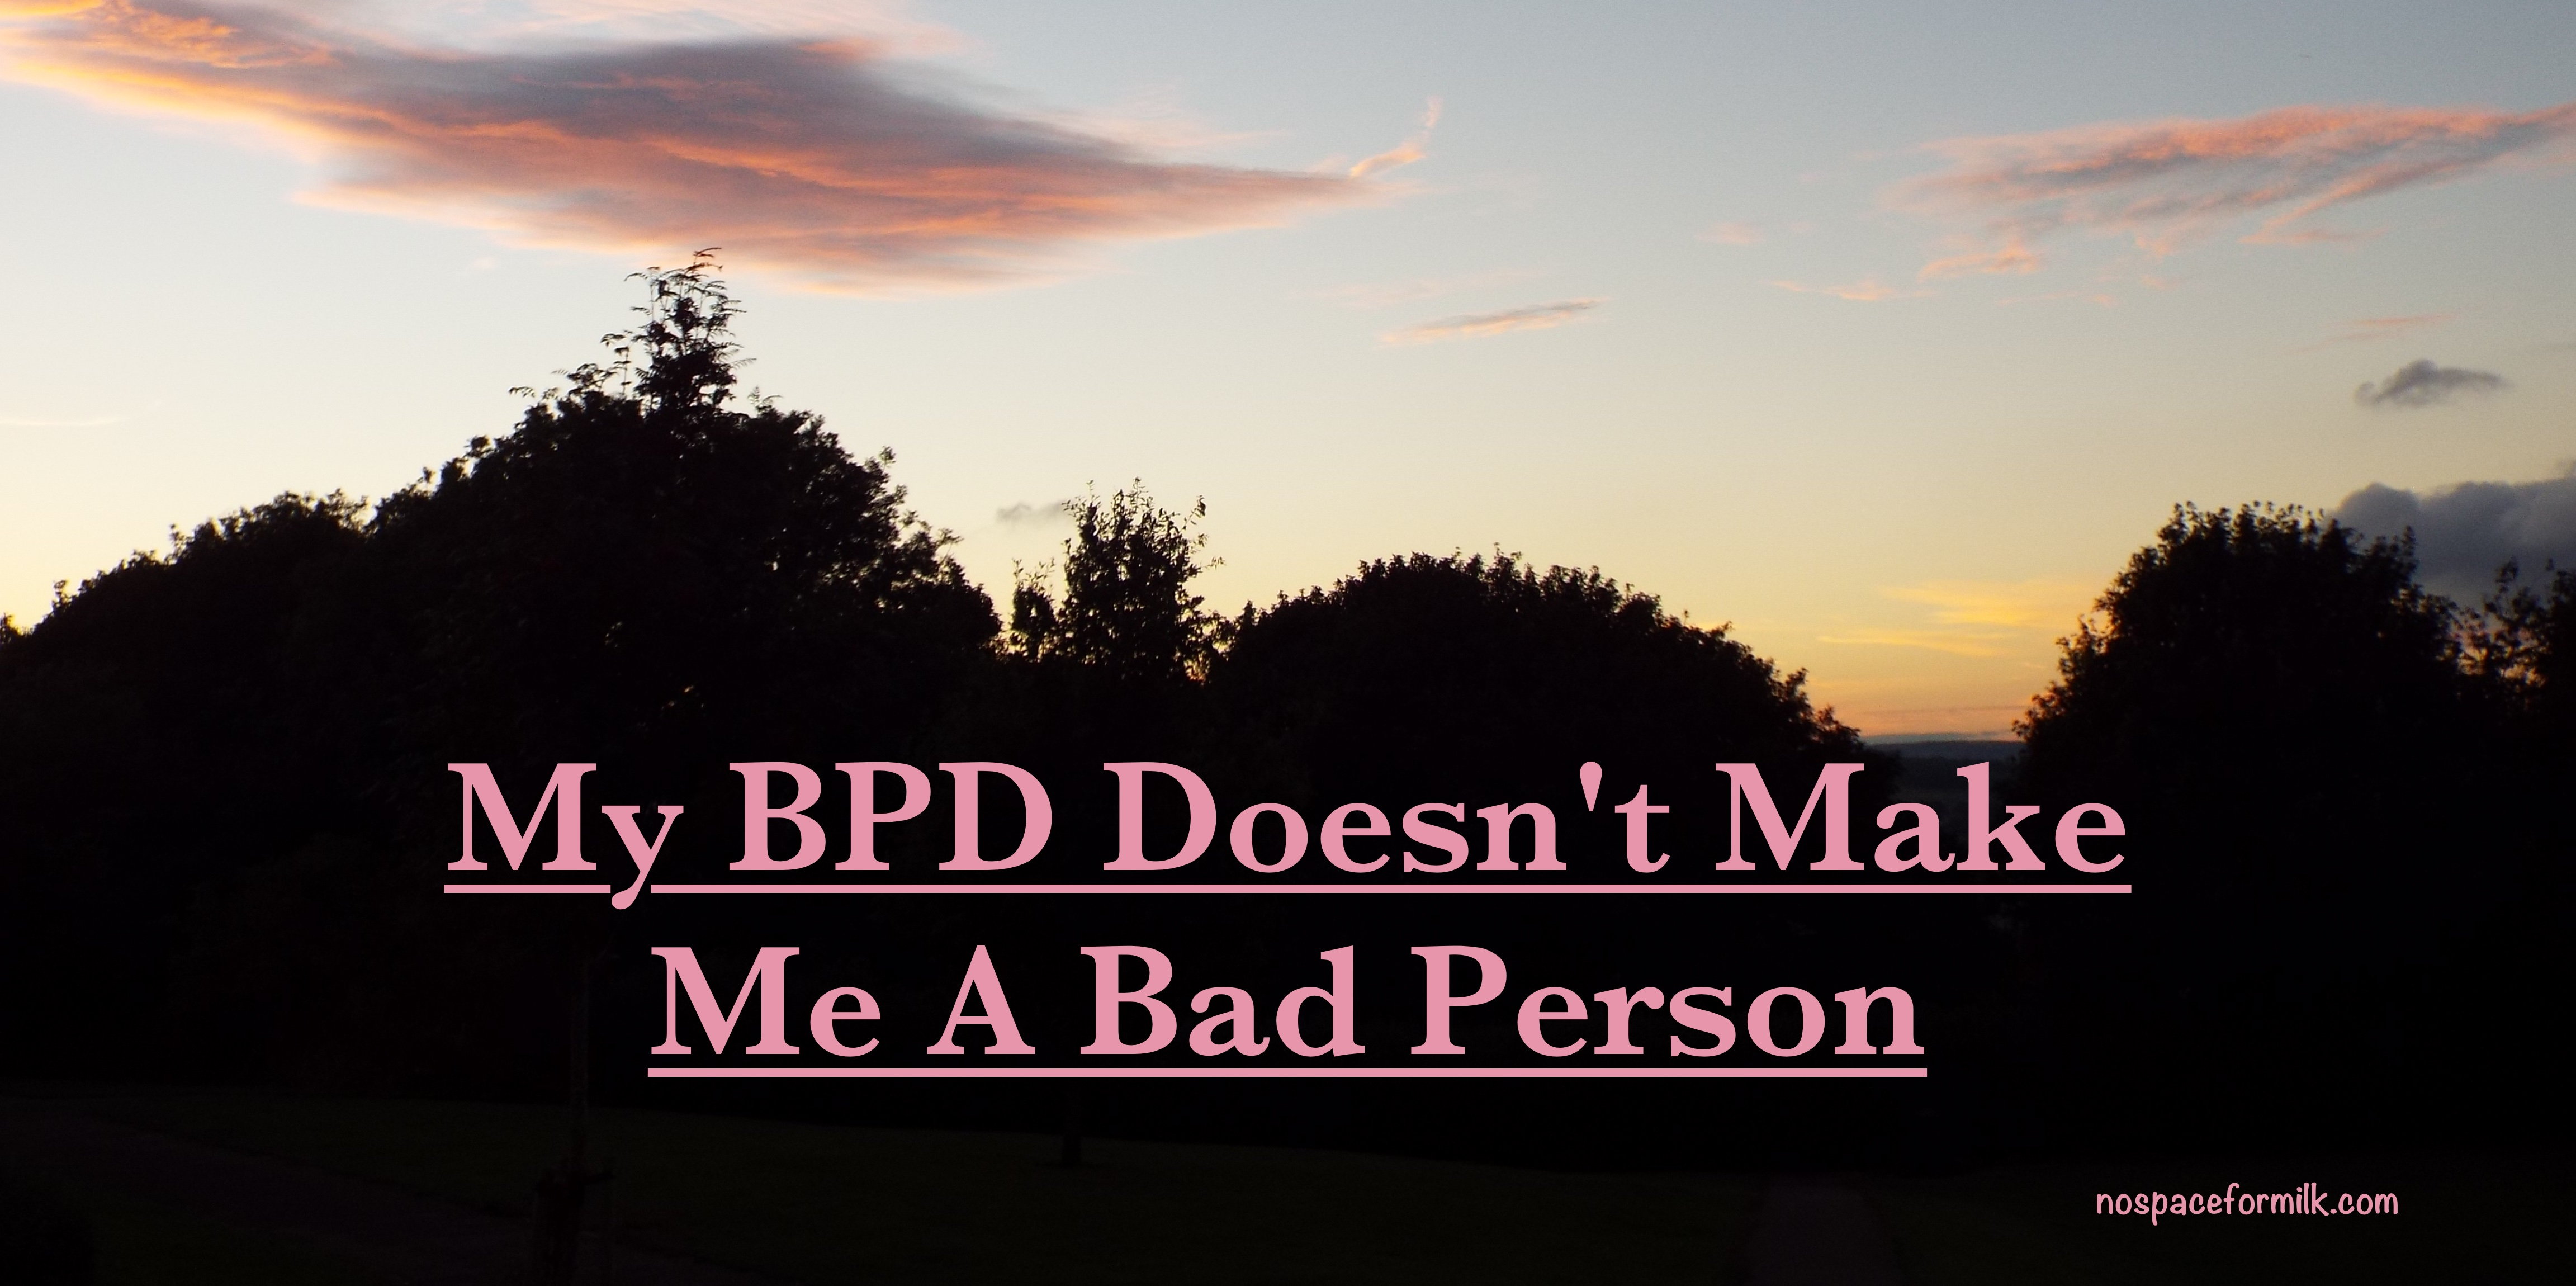 My BPD Doesn't Make Me A Bad Person